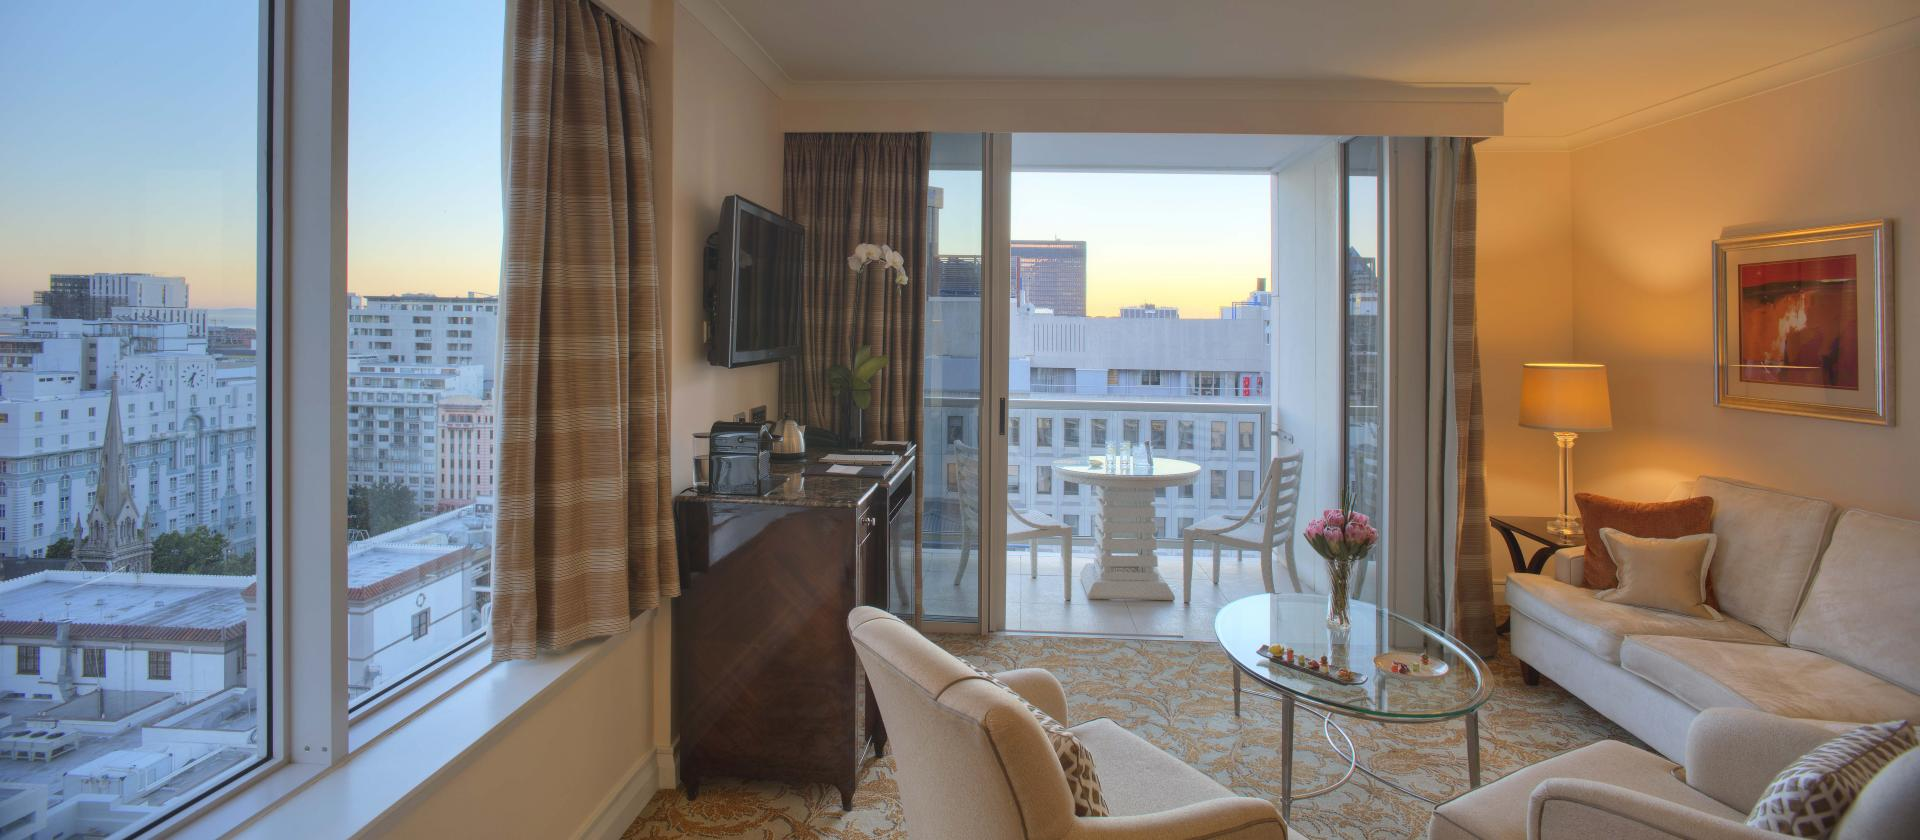 Lounge and Balcony at Taj Cape Town, Centre, Cape Town - Citybase Apartments